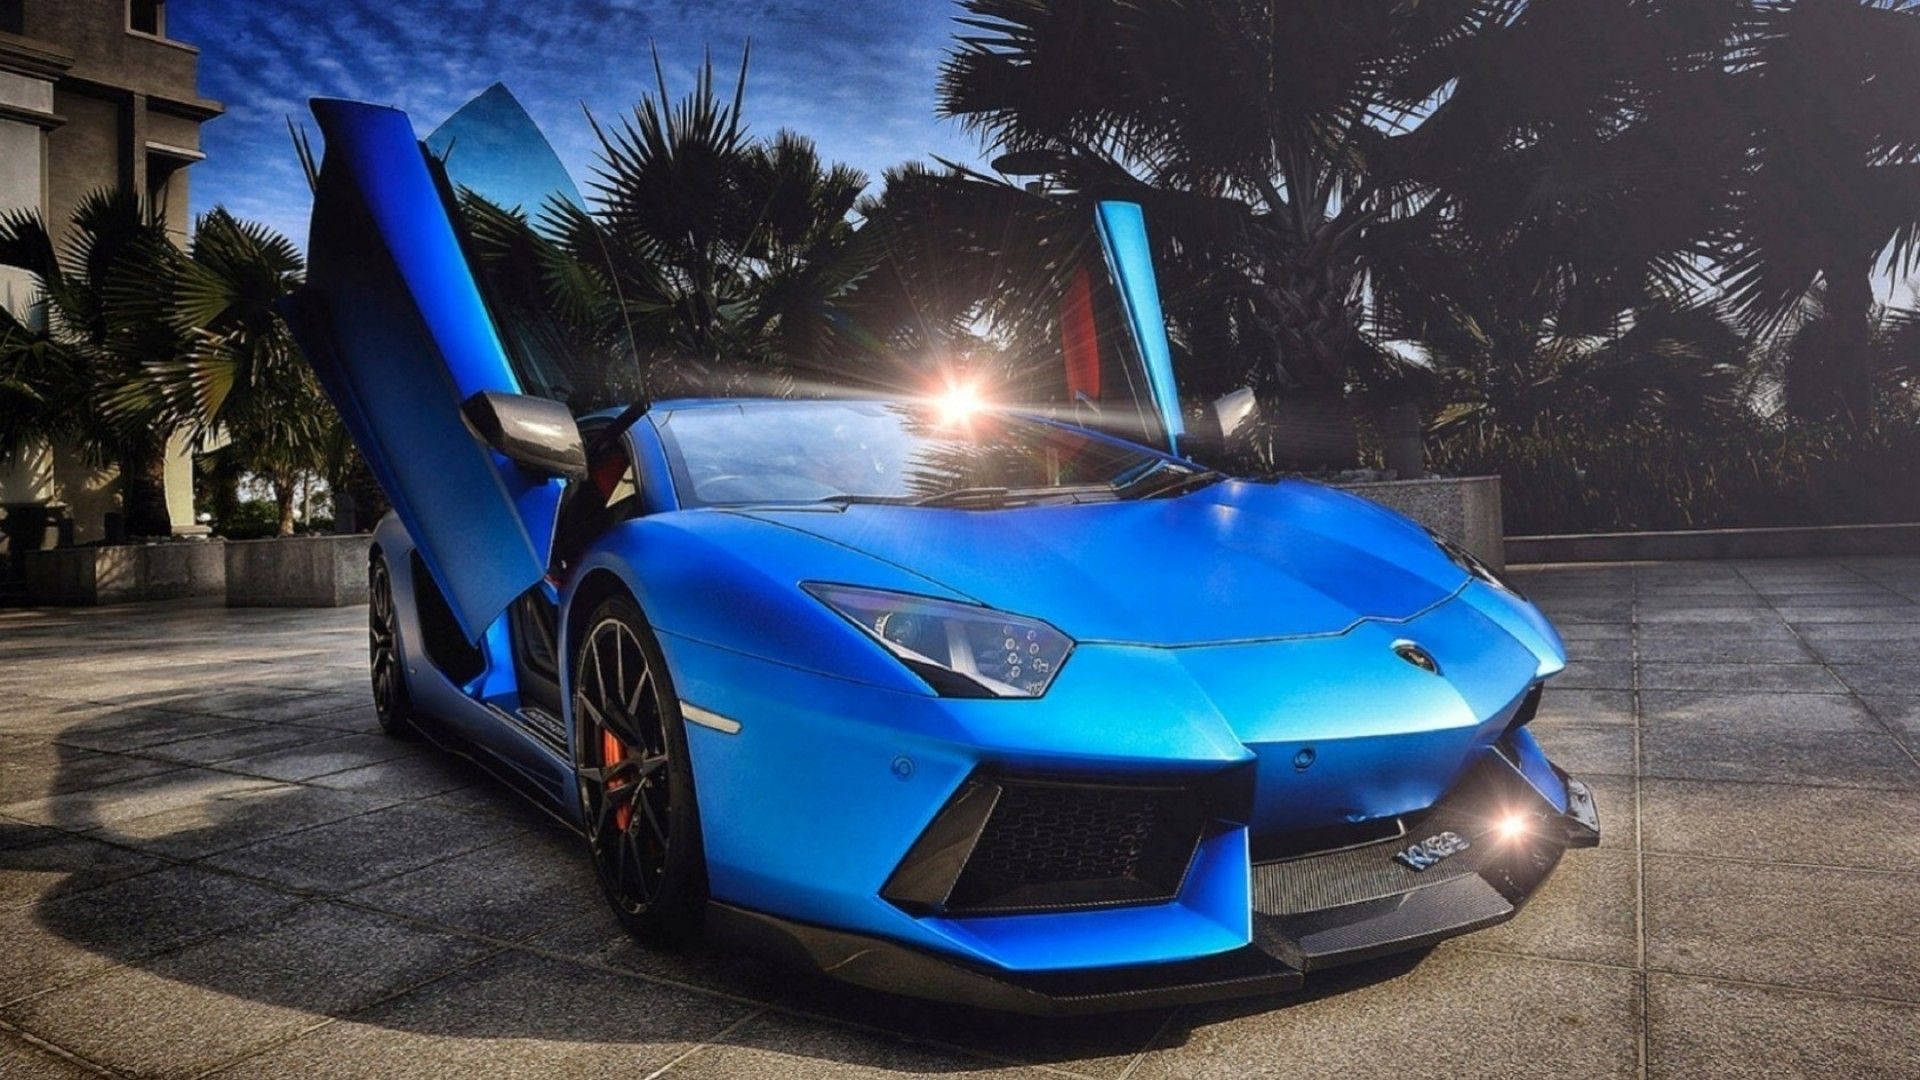 Blue Lamborghini Wallpaper For Android | Vehicles Wallpapers ...